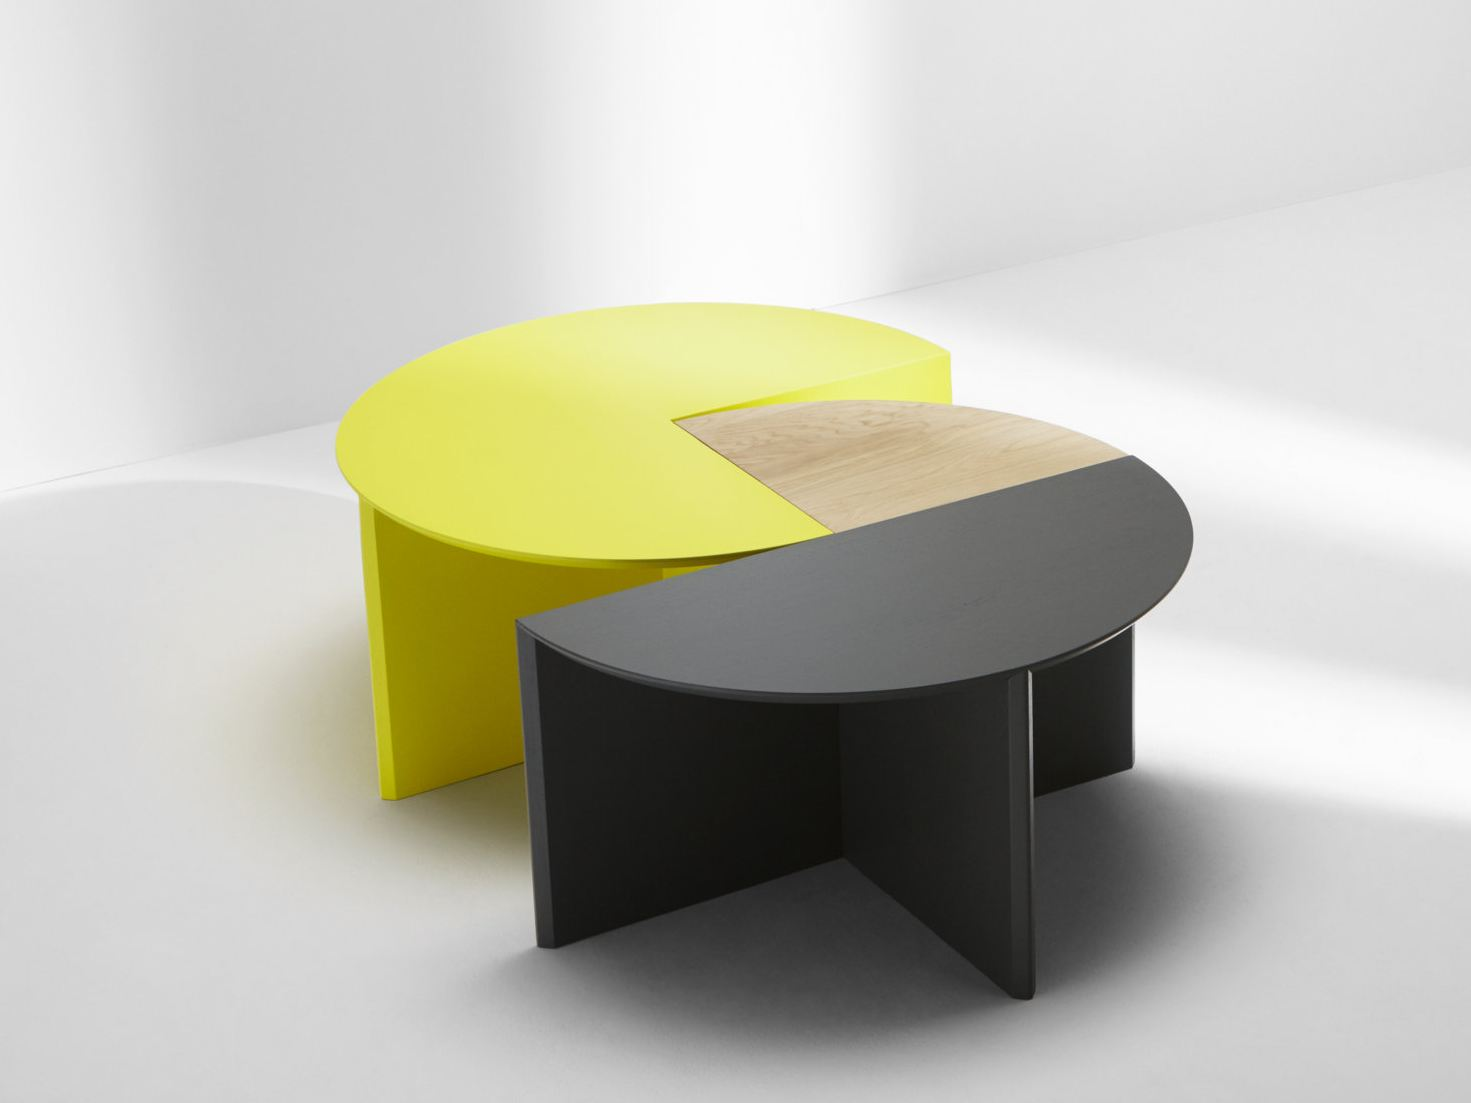 Modular Coffee Table Pie Chart System By H Furniture Design Hierve